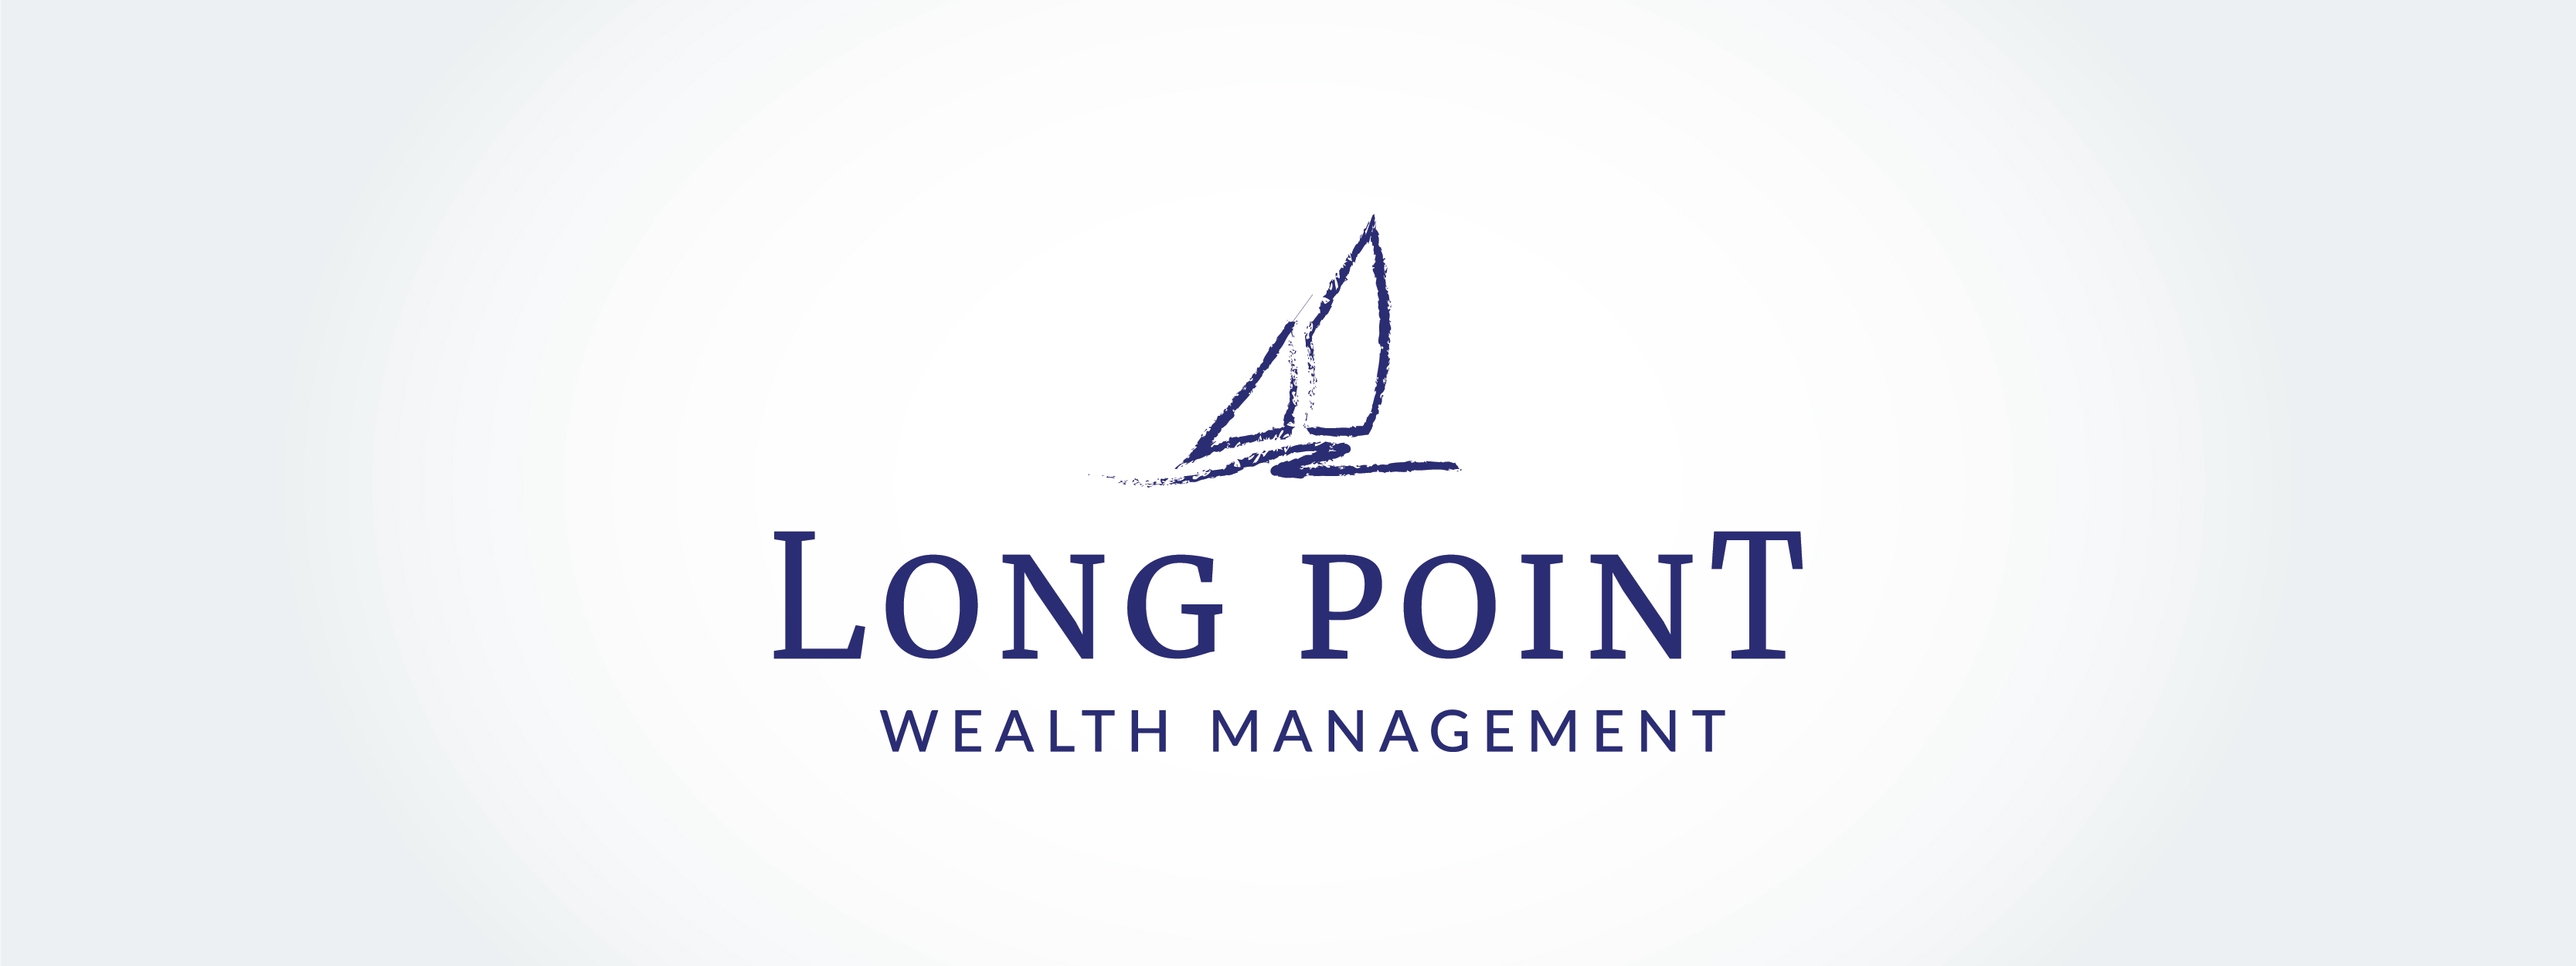 Long Point Wealth Management logo Featured Image